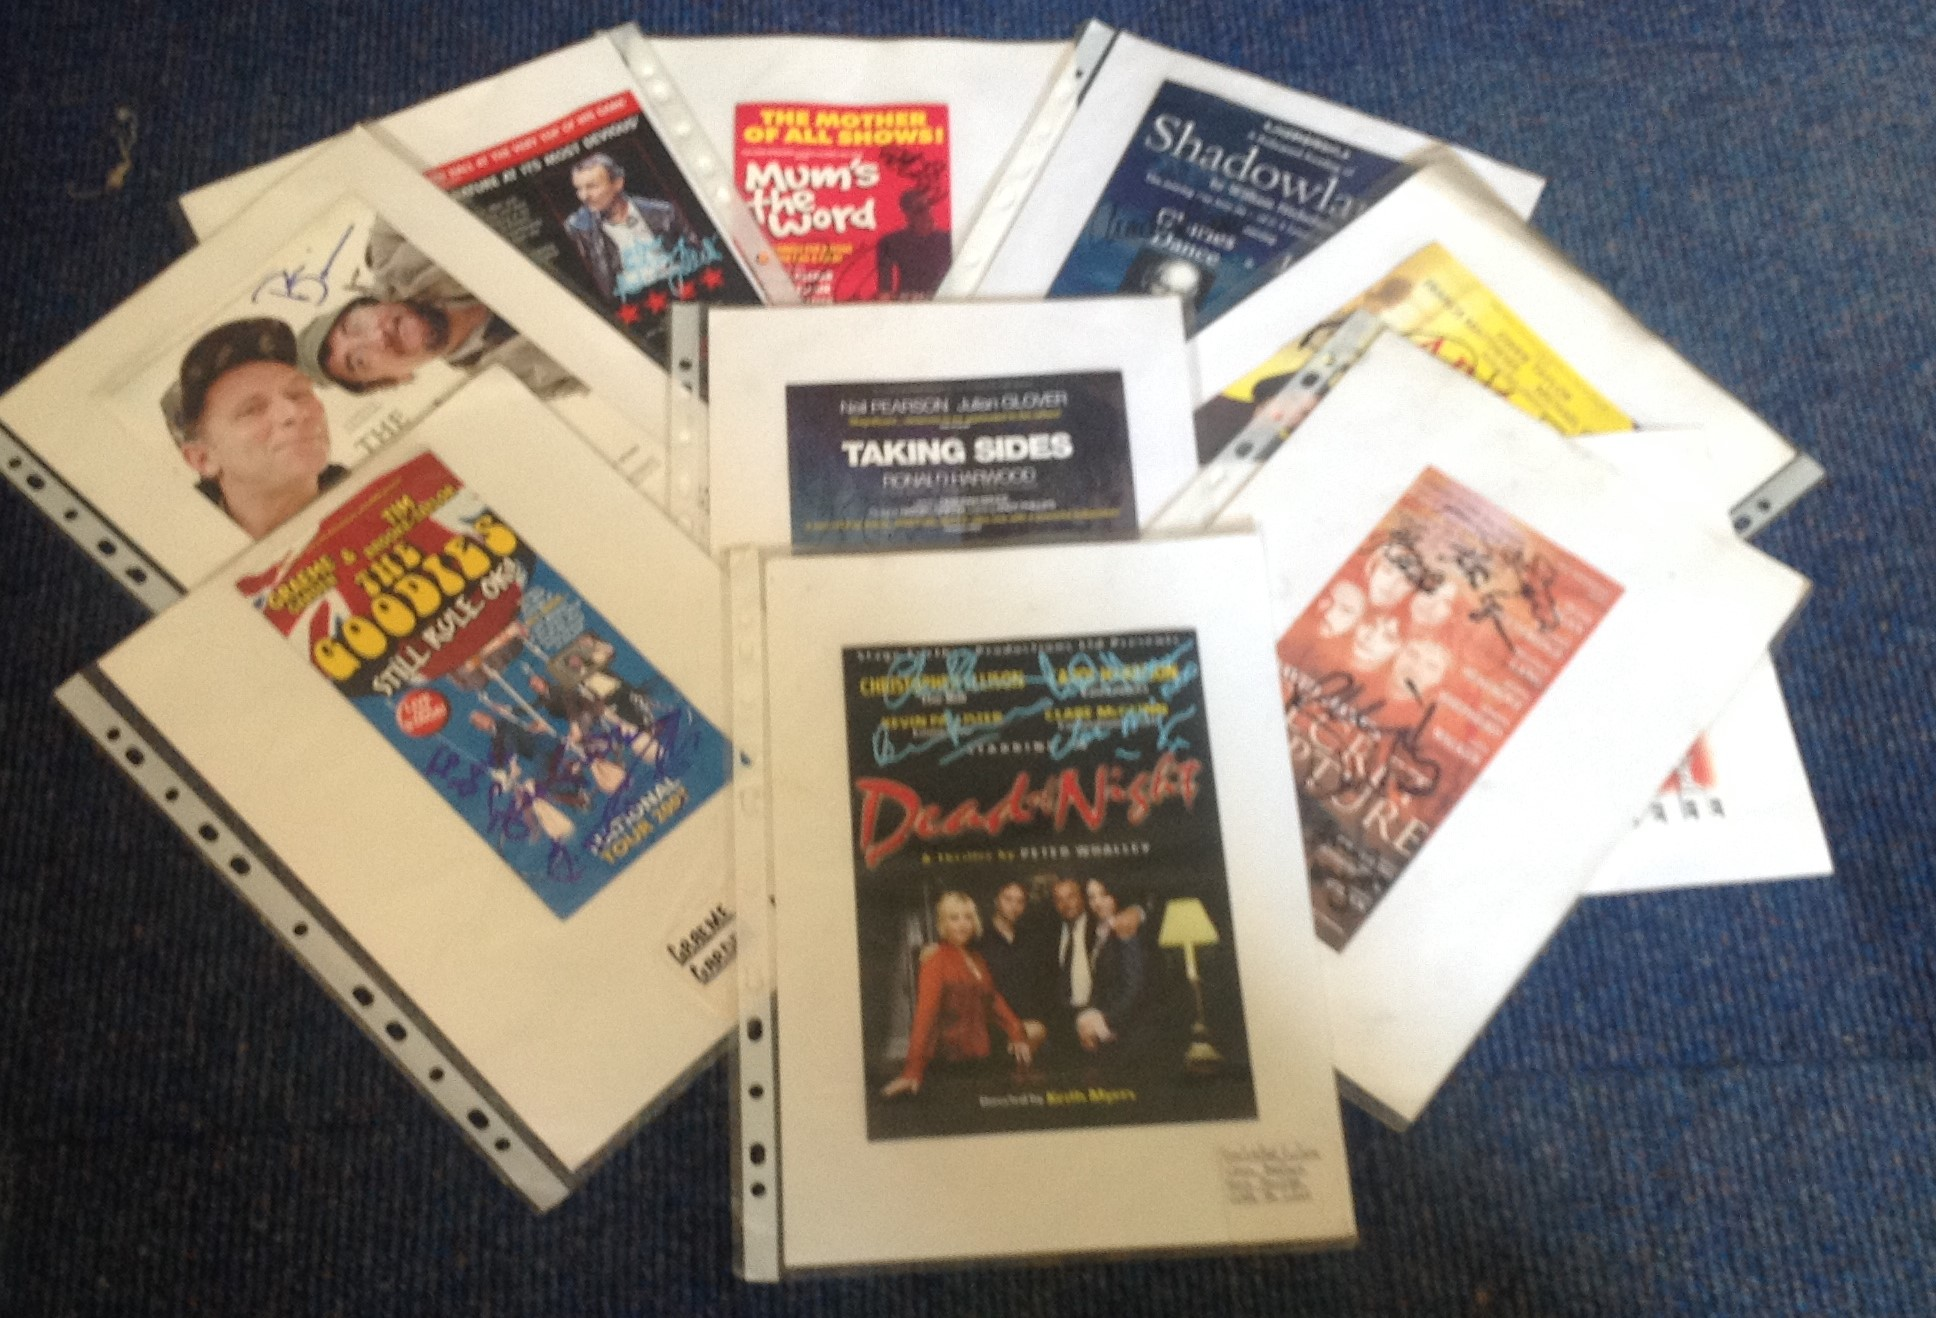 Lot 15 - Theatre flyer signed collection. 10 flyers included. Mostly multisigned. Some of signatures included